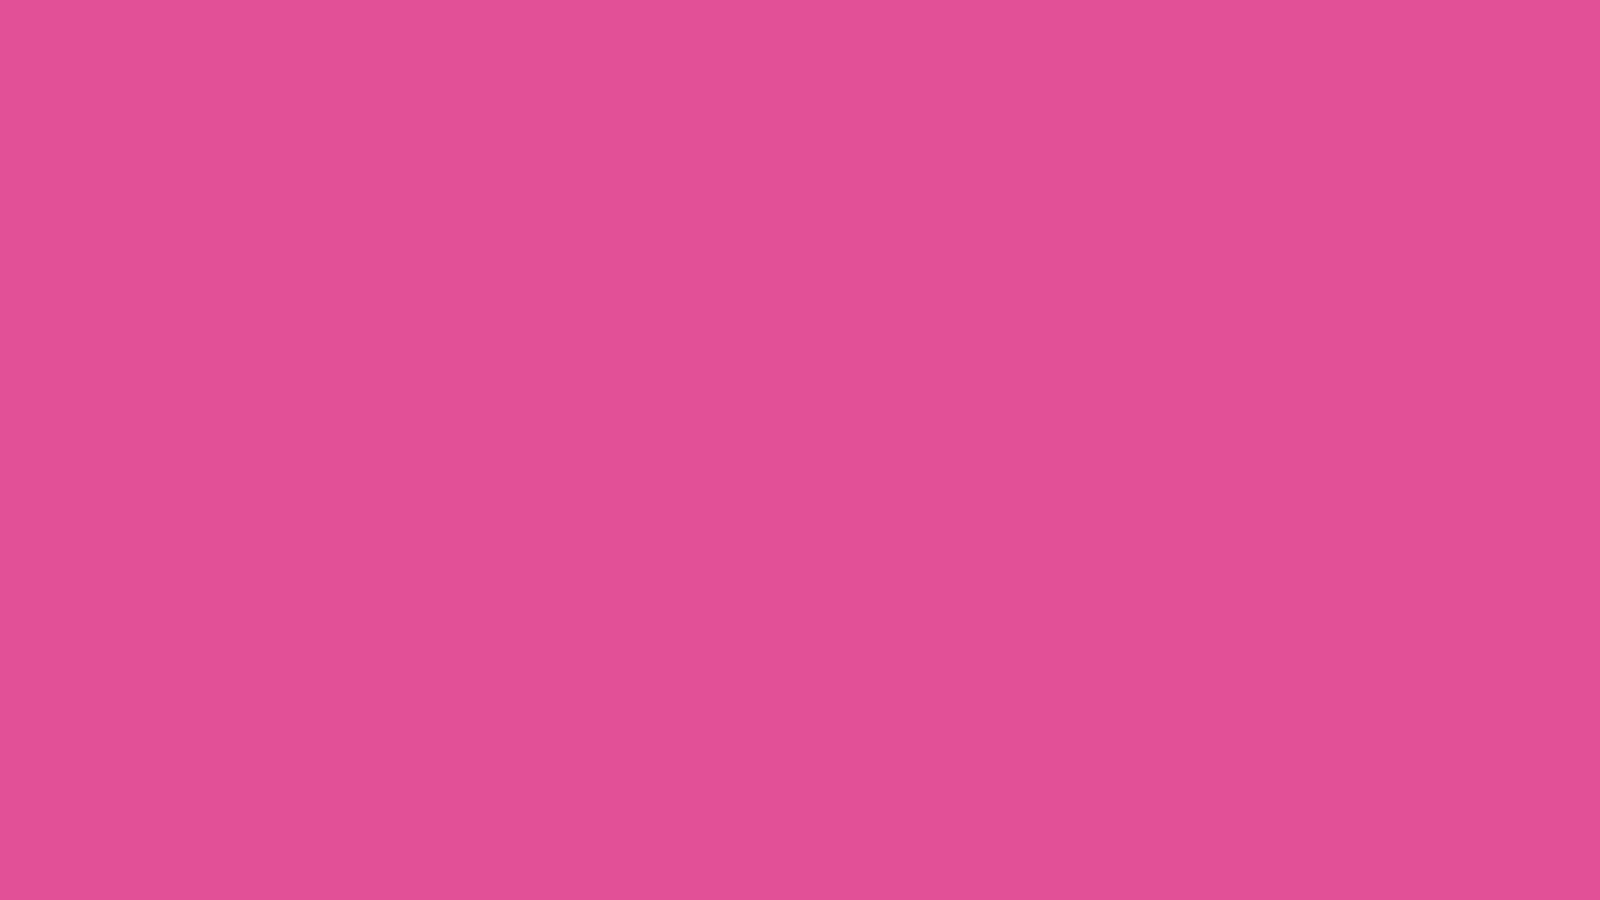 1600x900 Raspberry Pink Solid Color Background